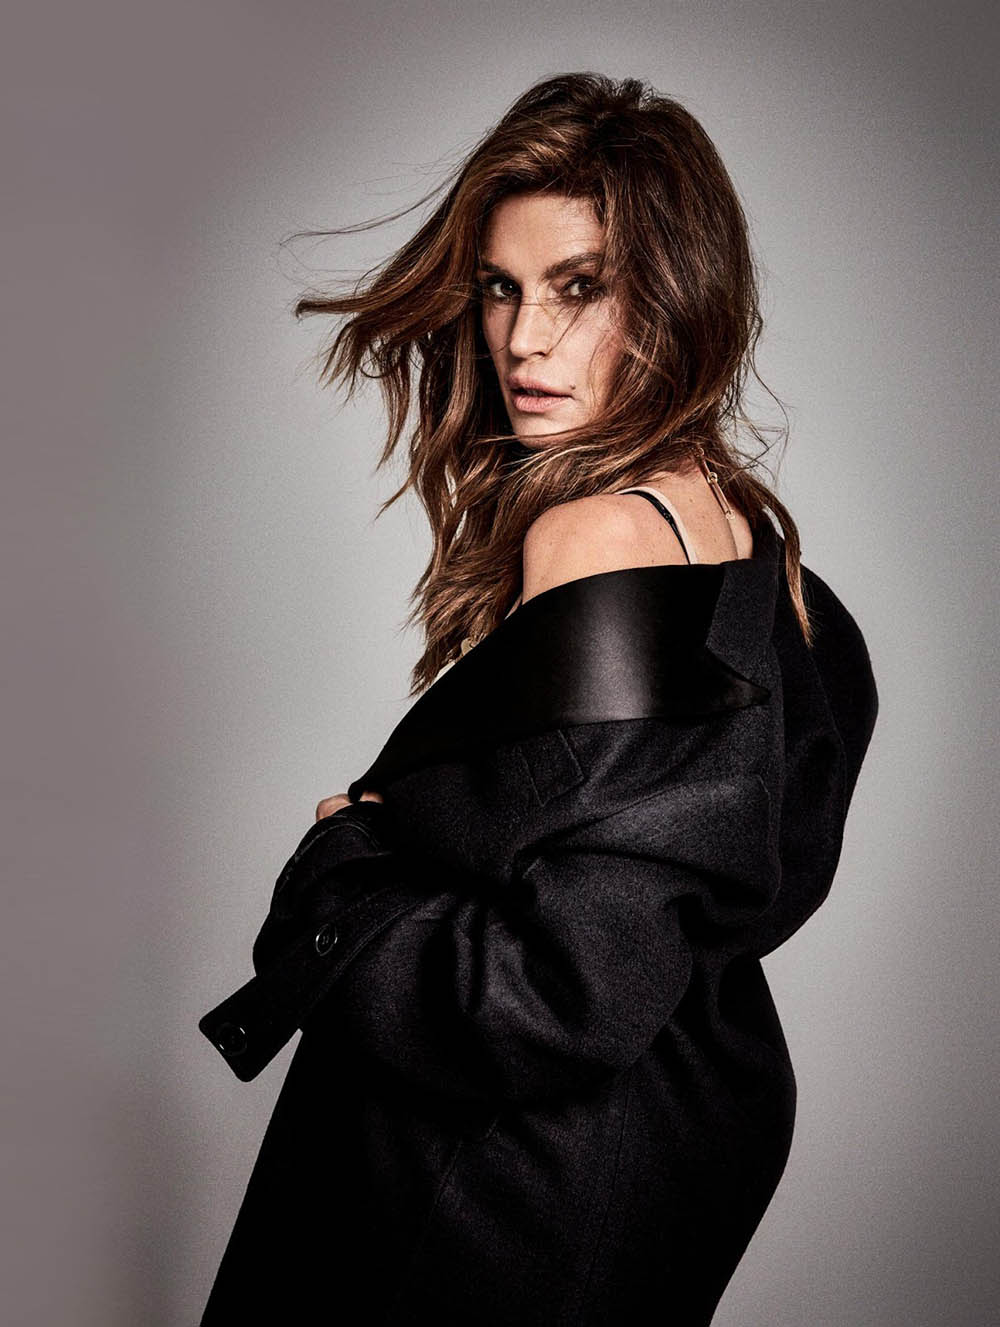 Cindy Crawford Covers Madame Figaro December 29th 2017 By